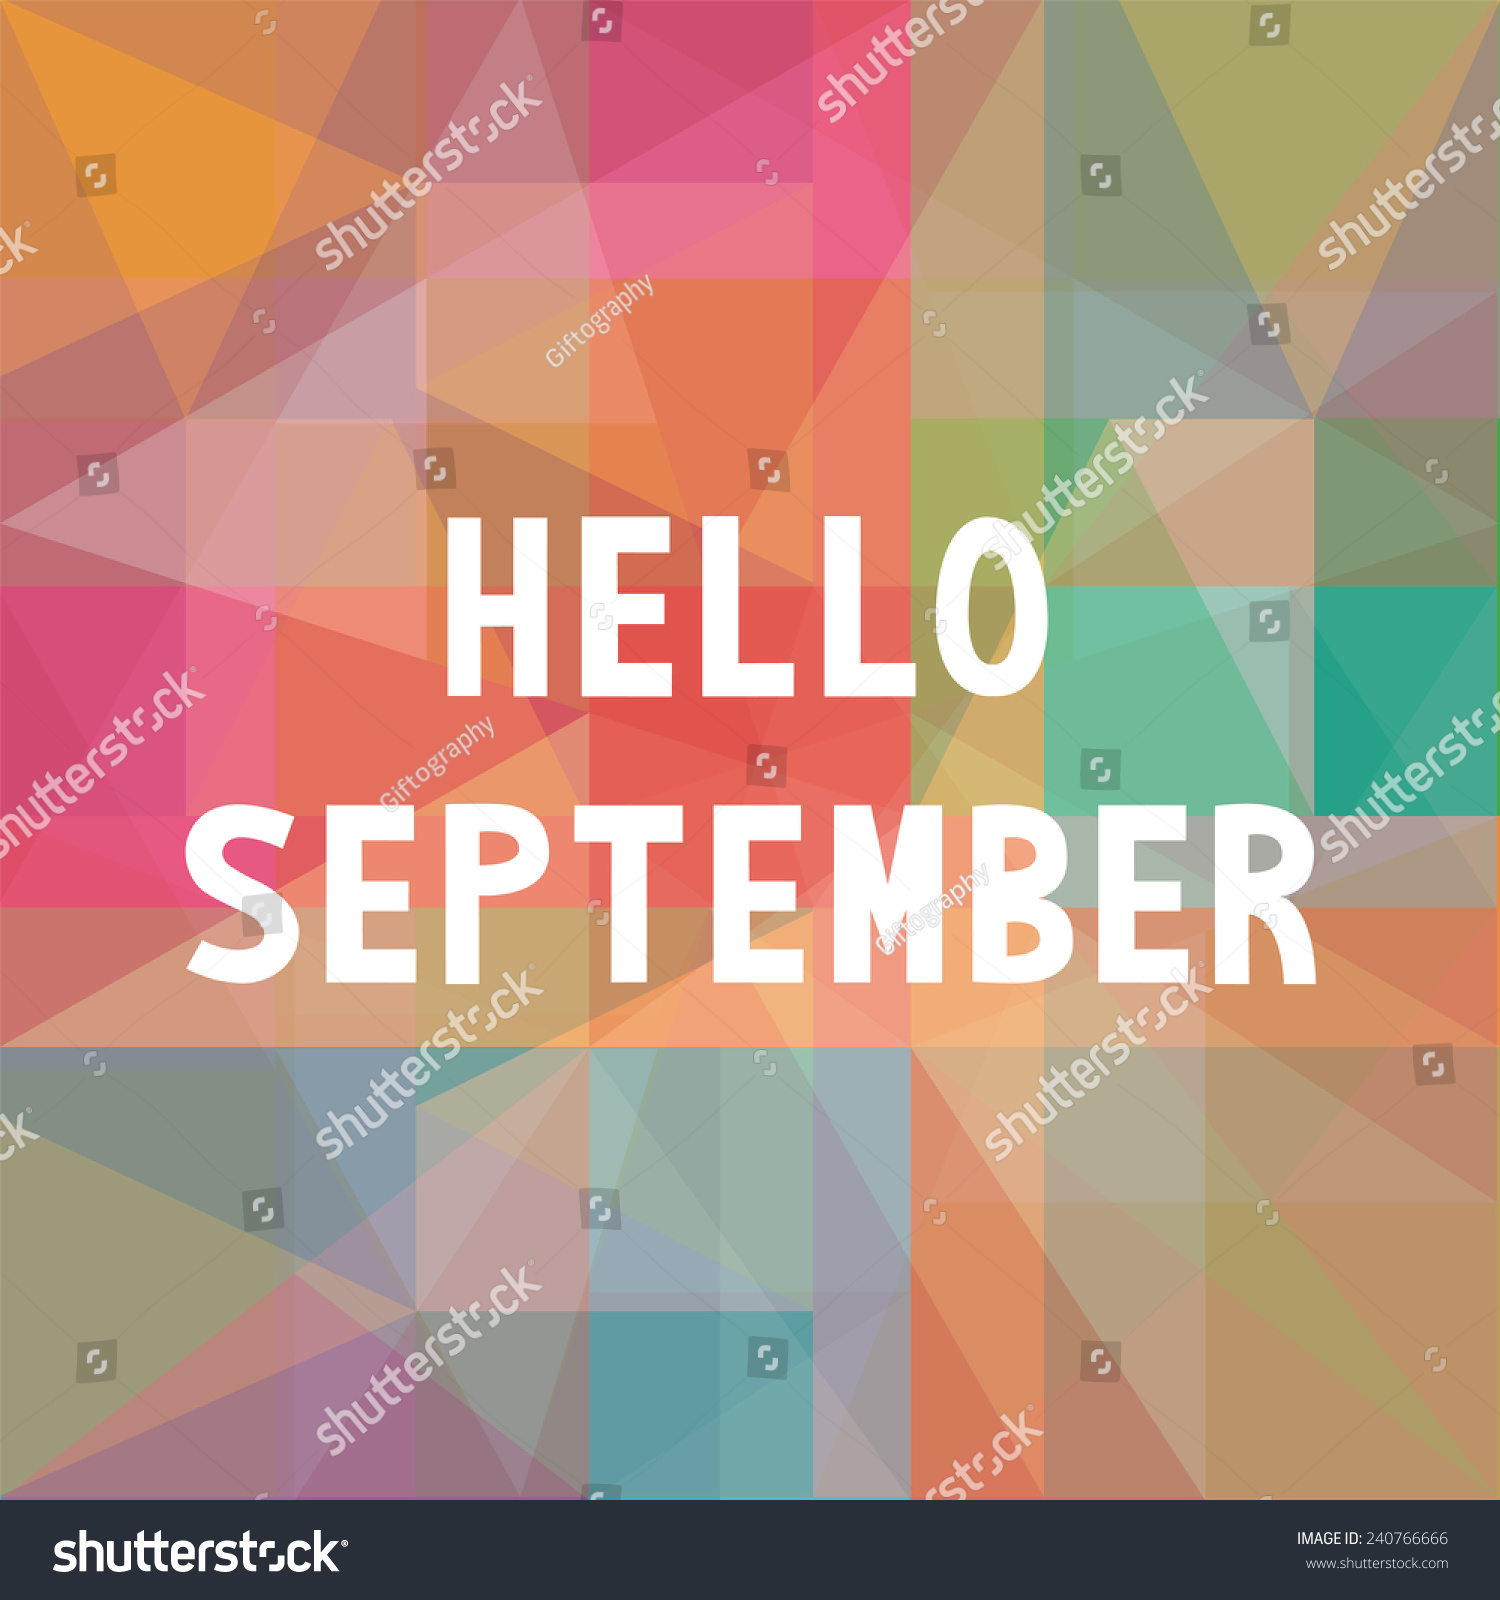 Hello September Card For Greeting. Positive Saying About The Working Week.